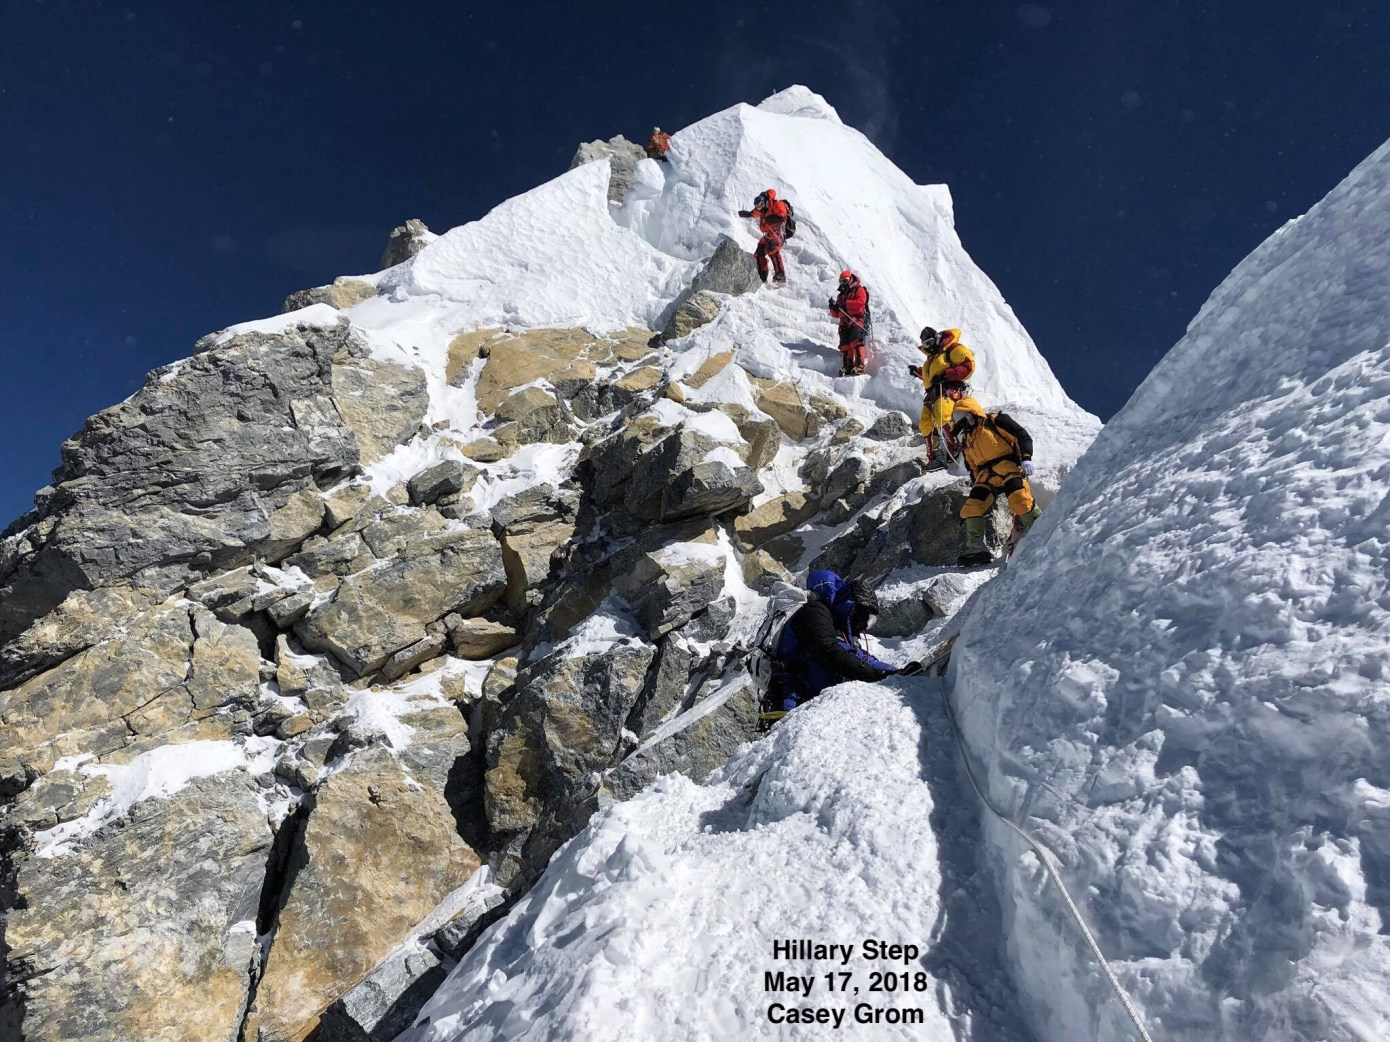 MT. EVEREST EXPEDITION – (8848 M)